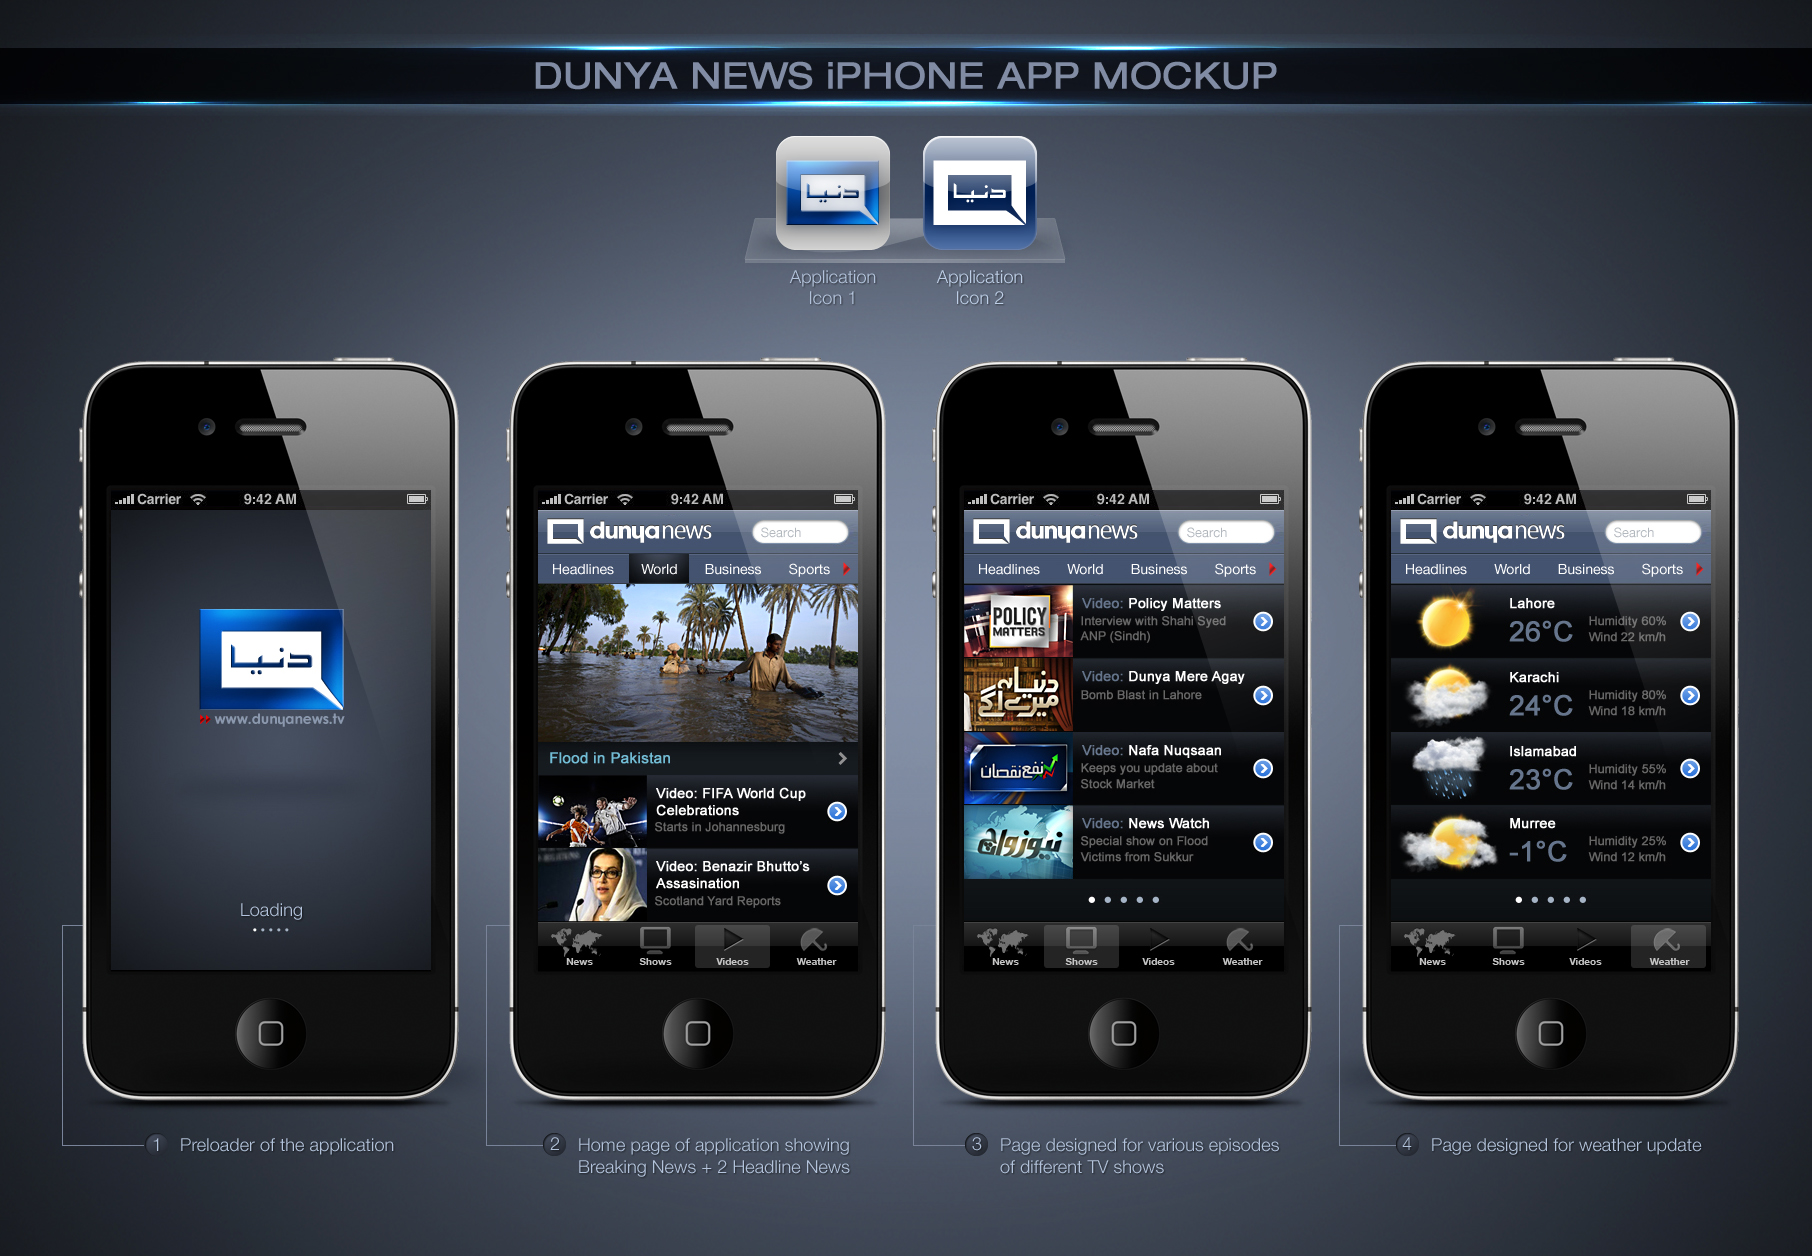 Dunya news iphone app by aliather on deviantart for Designing an iphone app